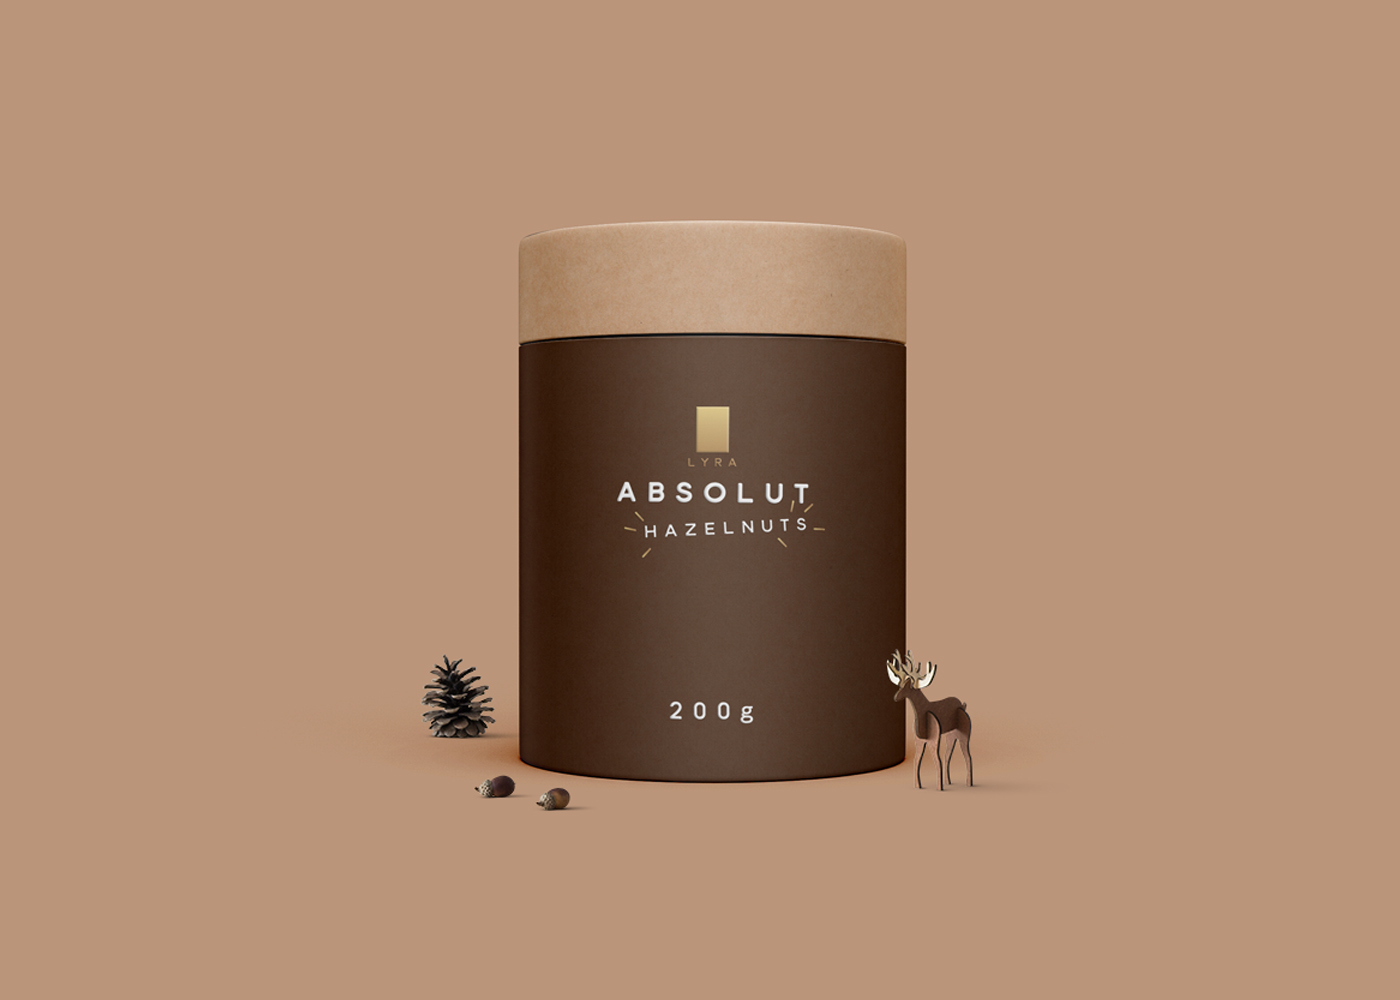 Absolut hazelnut